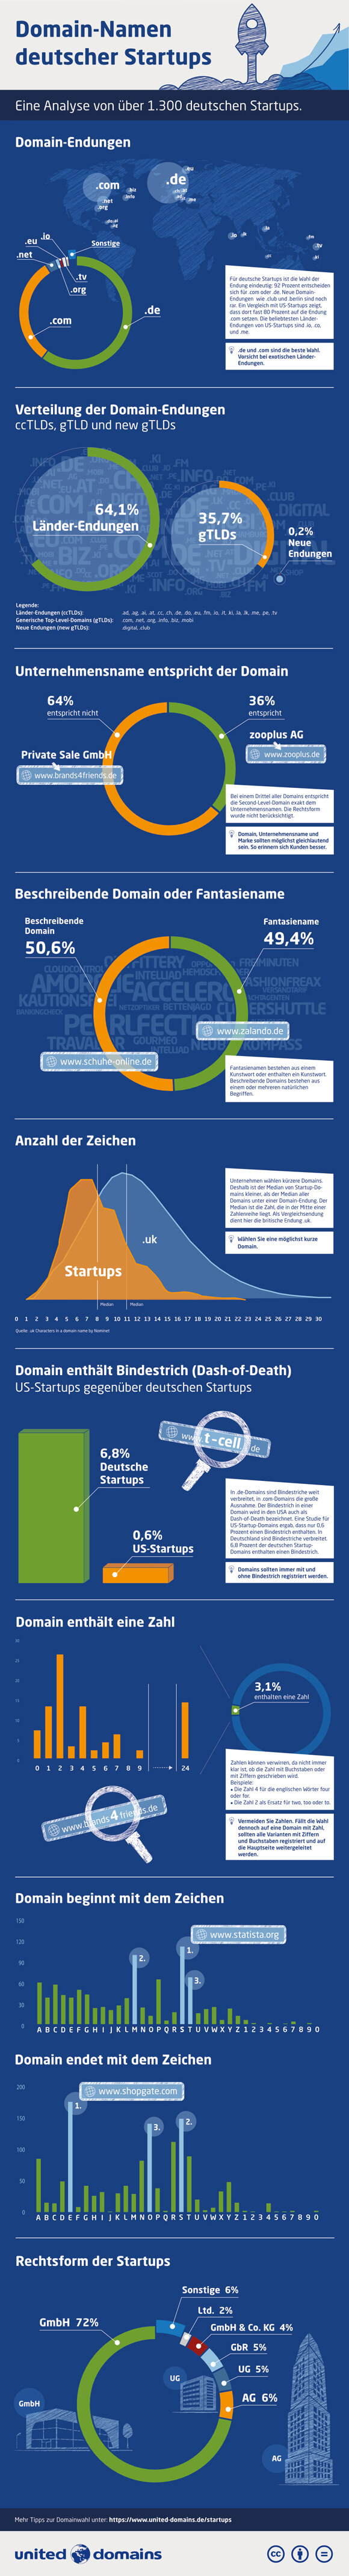 ds-startup-domains